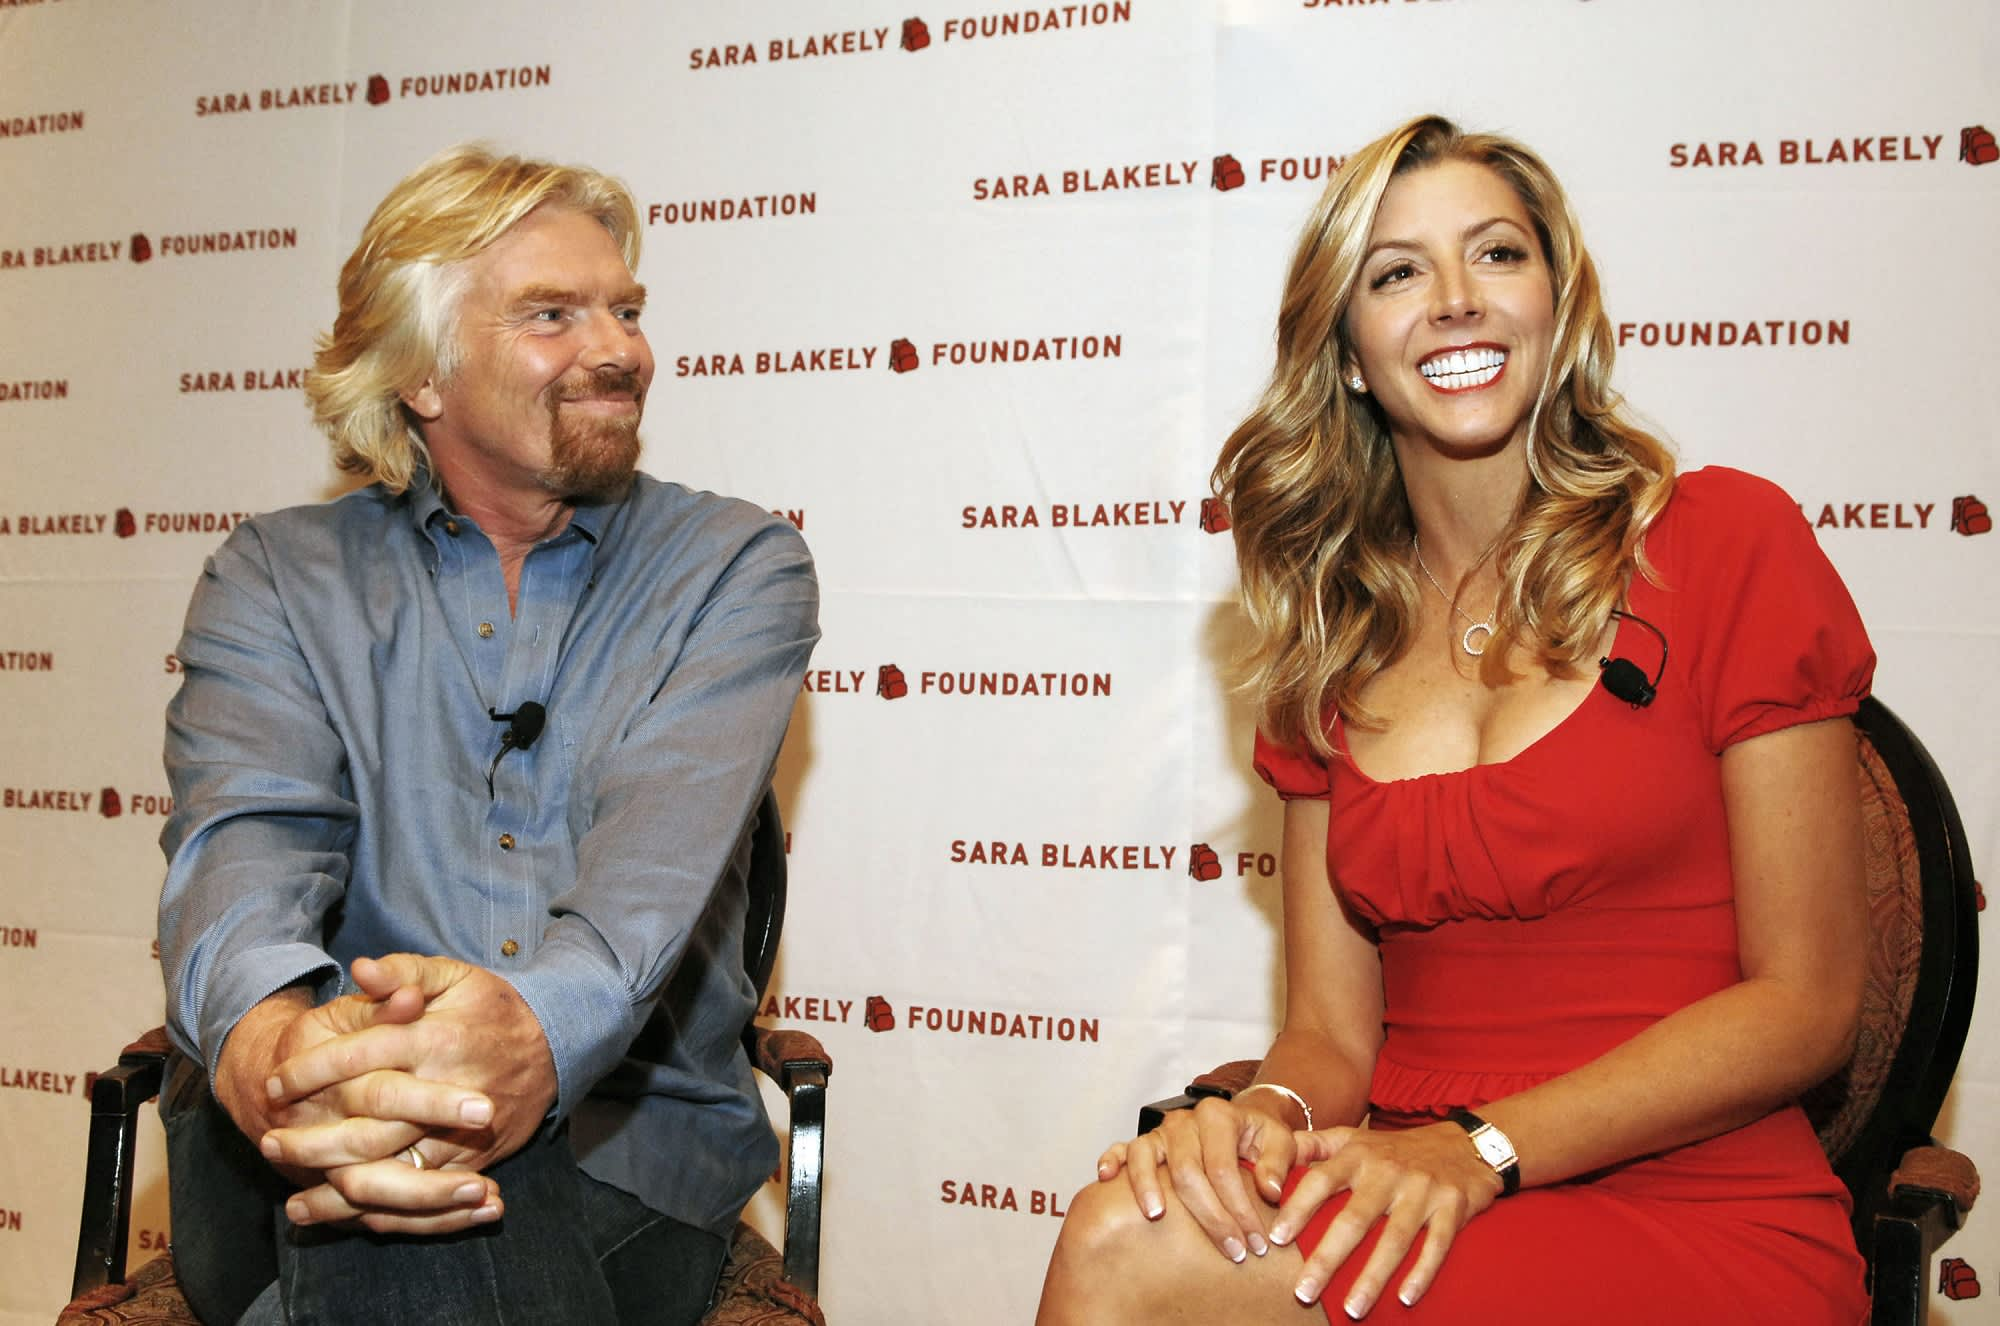 Richard Branson, Sara Blakely and other billionaire entrepreneurs share one 'underrated quality'